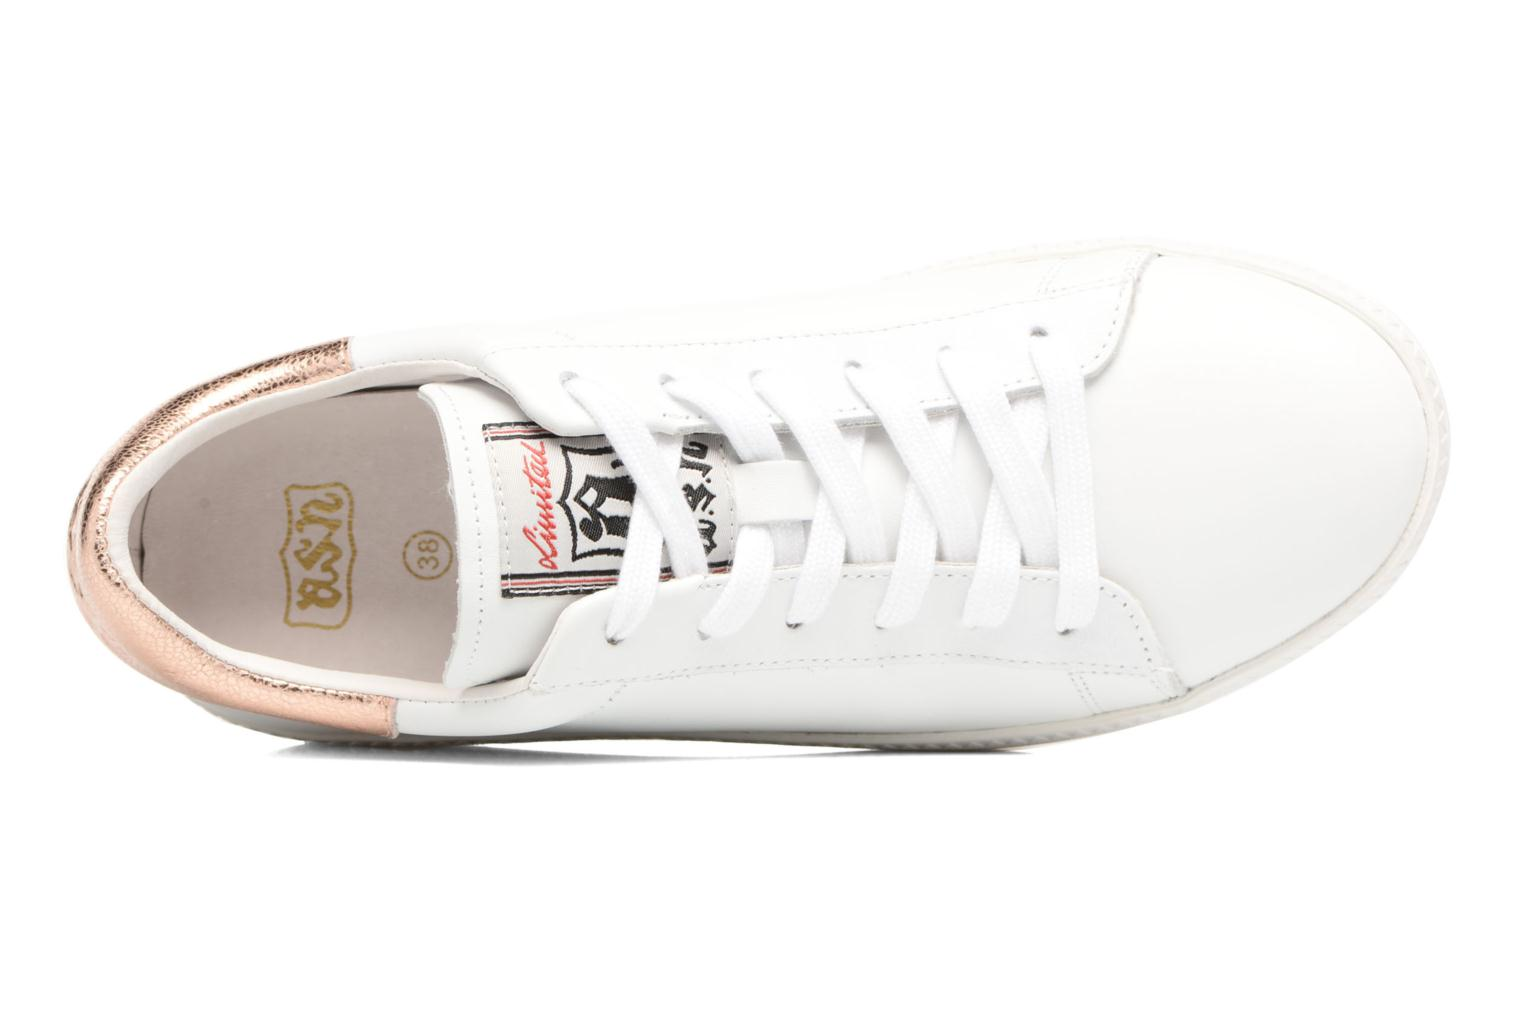 Cult Combo E Nappa Calf White / Metal Rock Rame